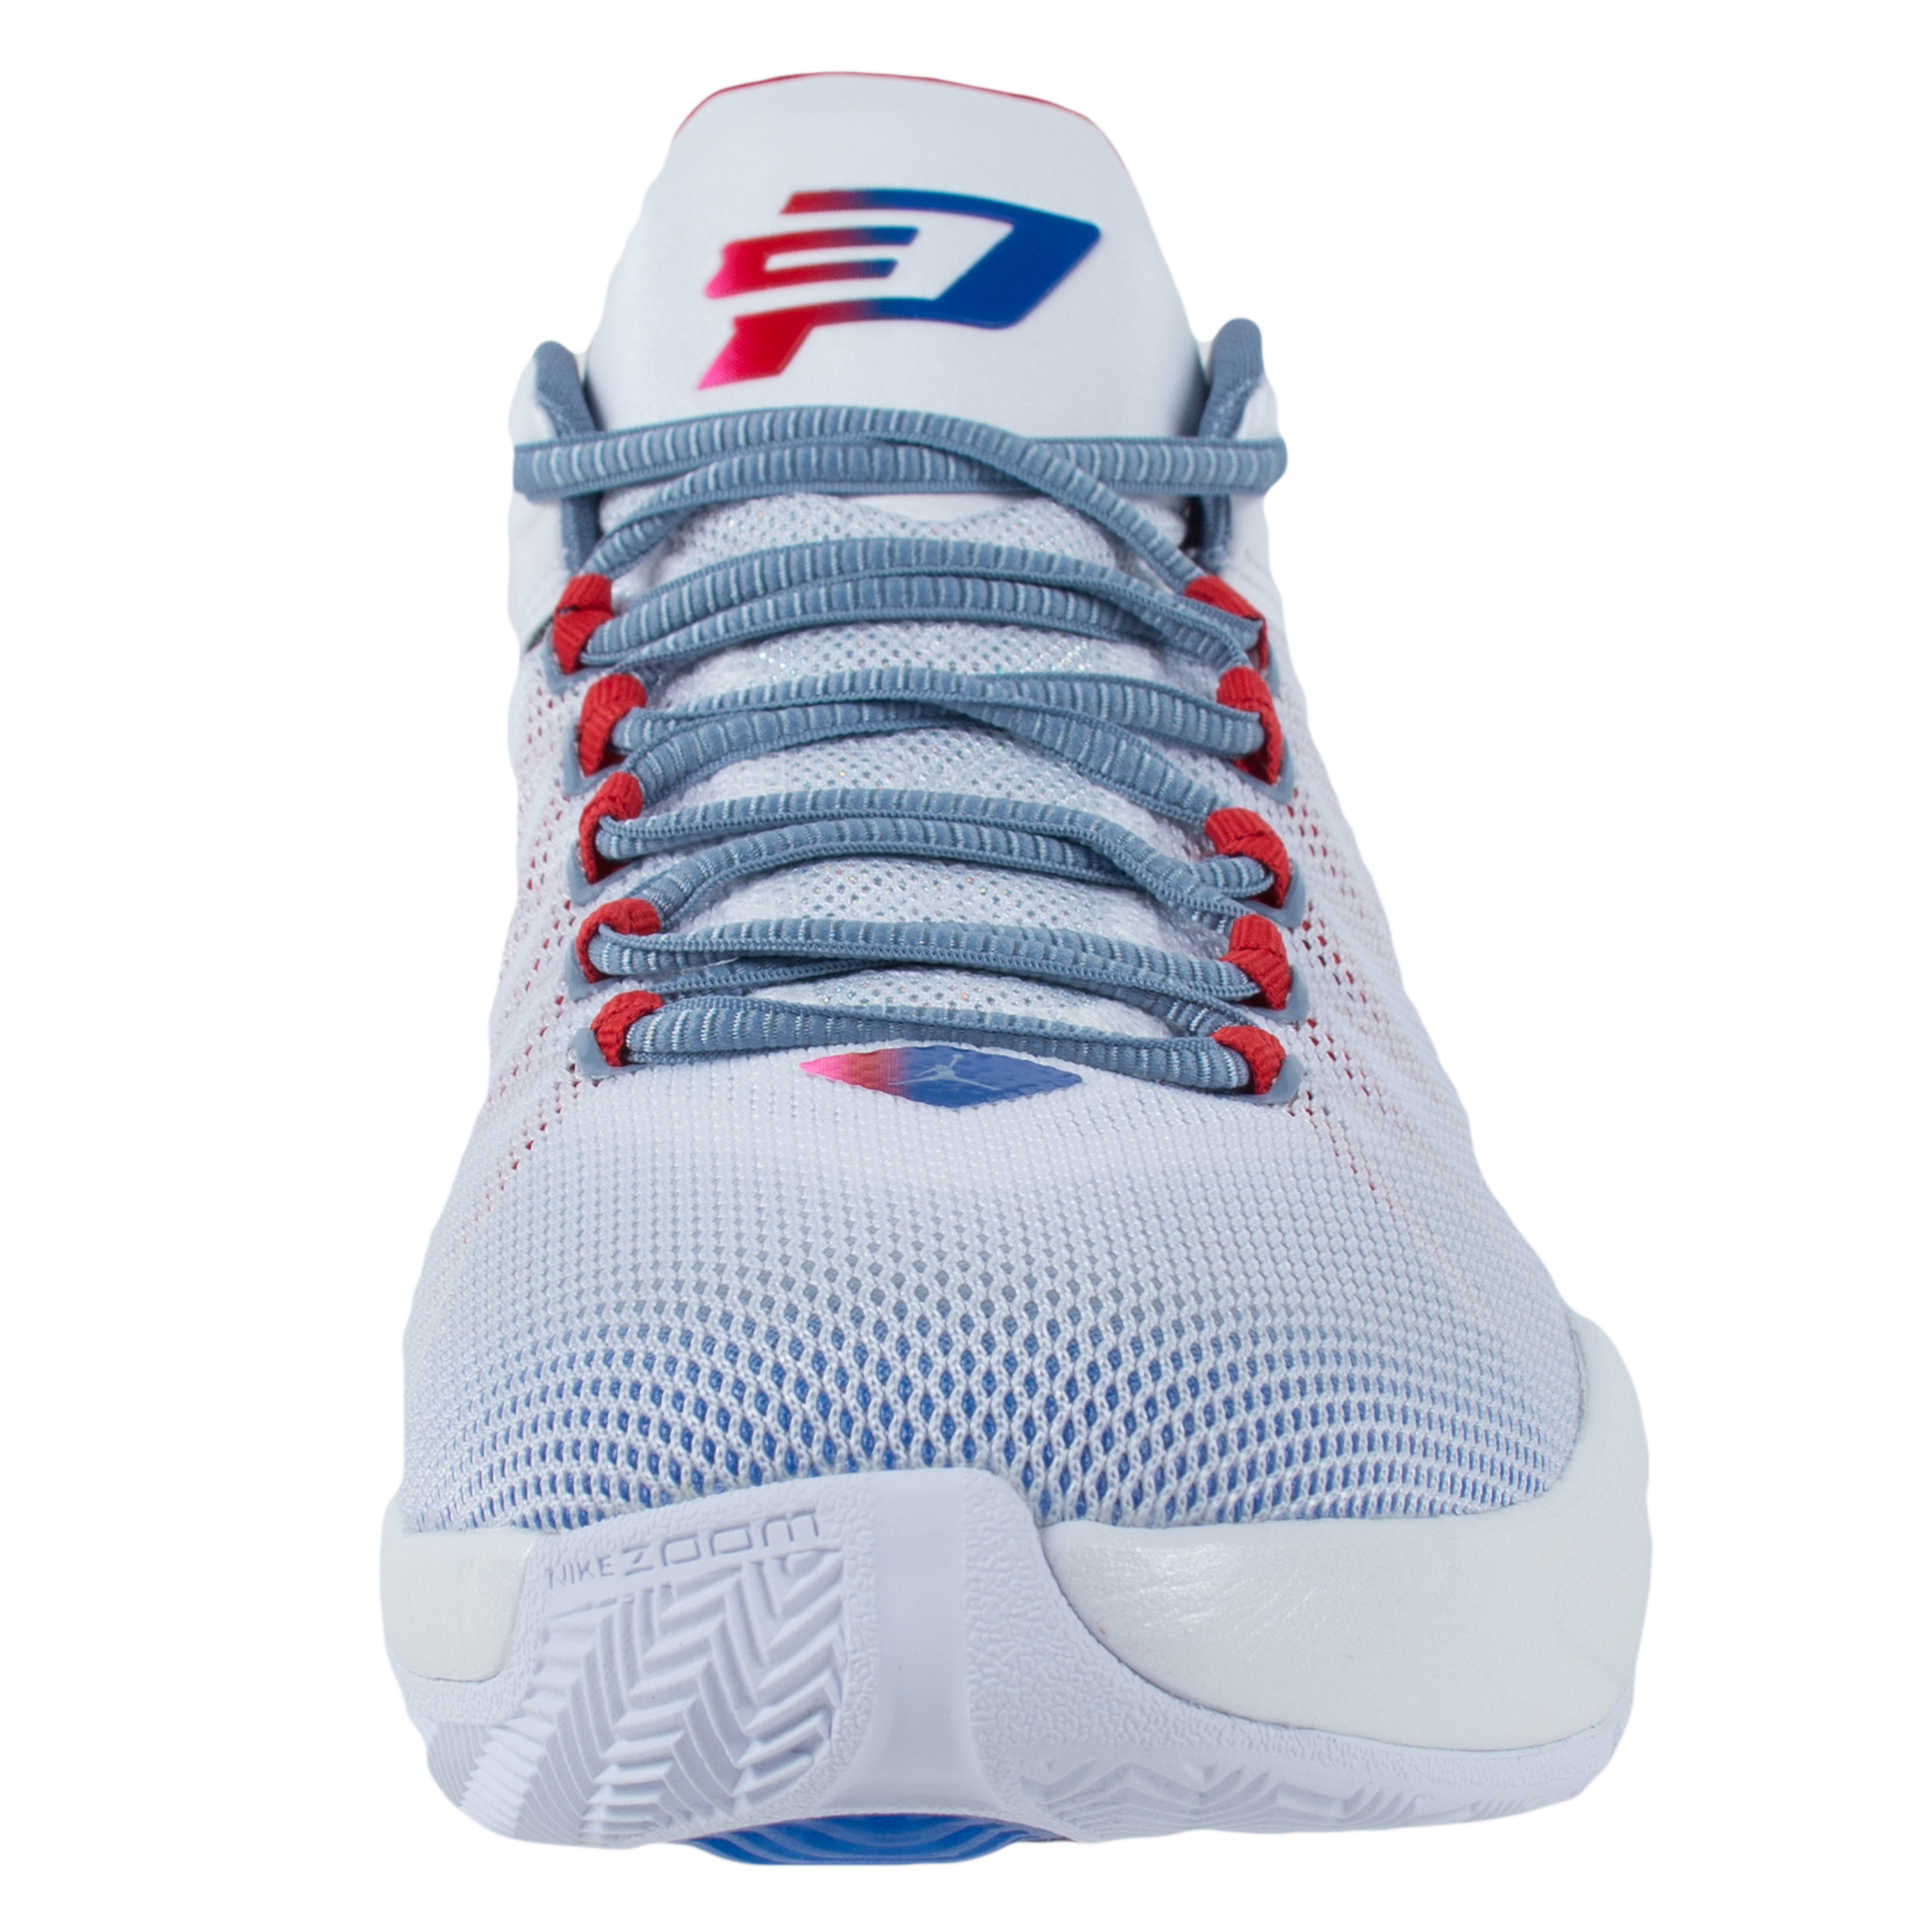 info for e8452 dff81 ... nike jordan cp3.viii ae basketball shoes white game royal sport red  725173 107